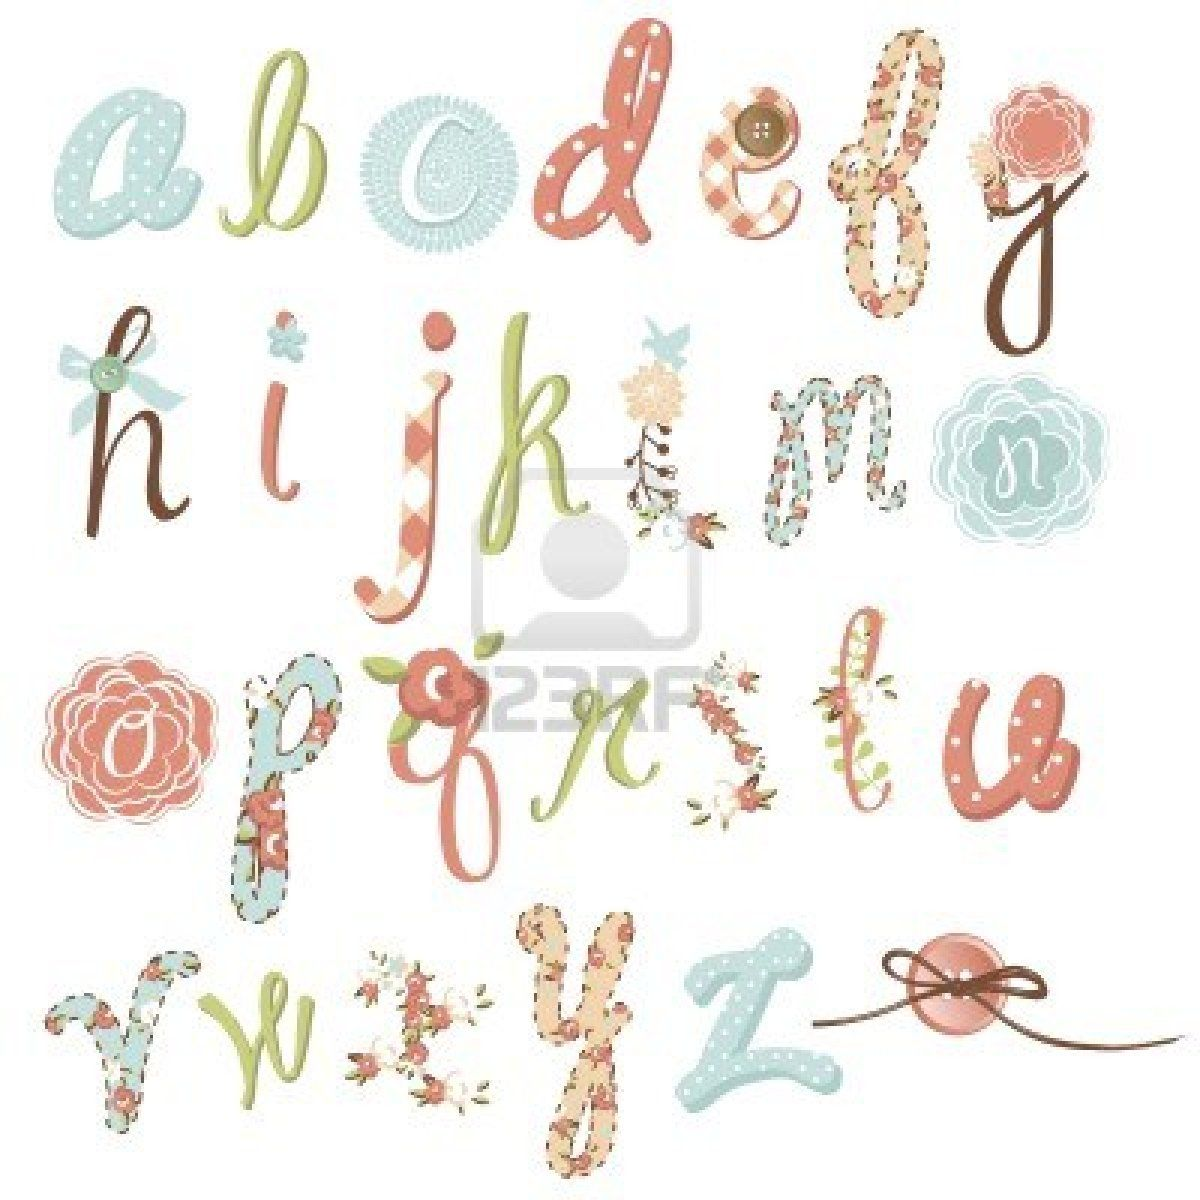 Hand drawn alphabets google search lettering pinterest